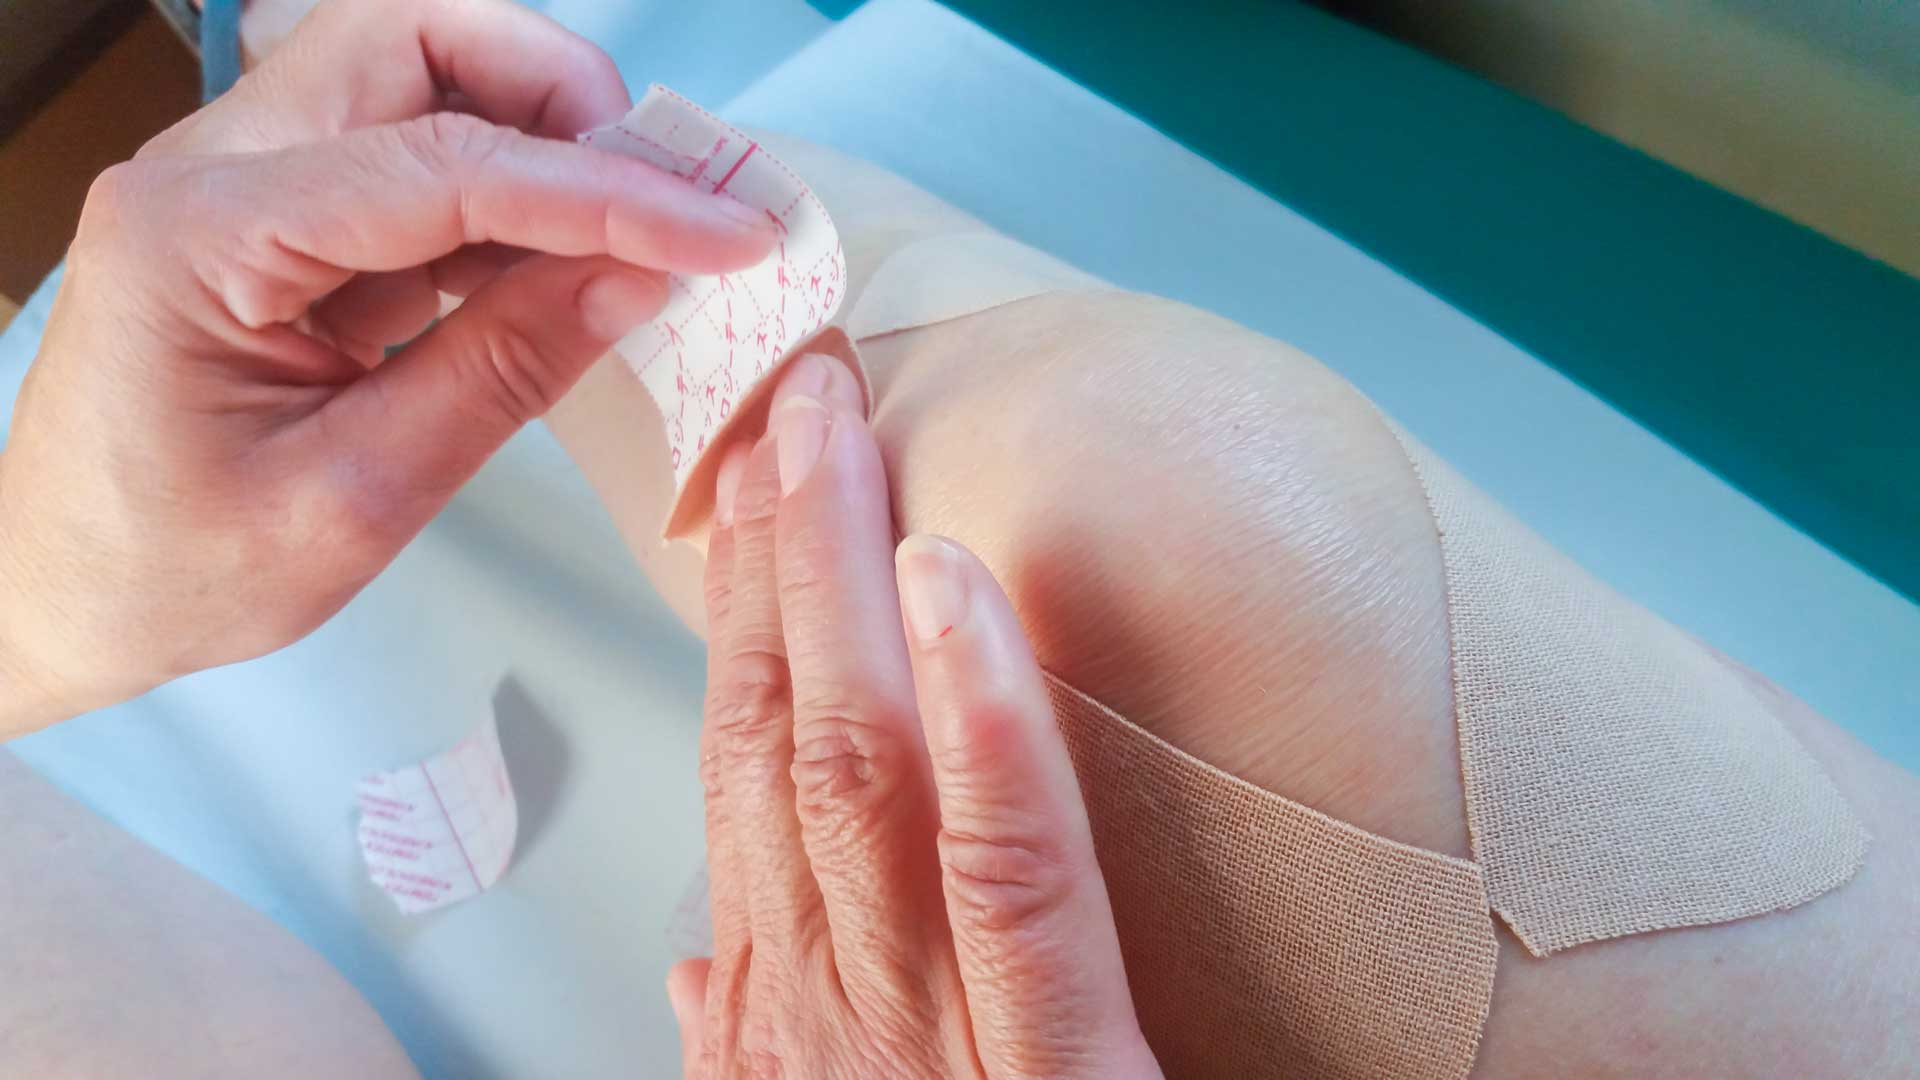 applying_adhesive_bandage_to_knee